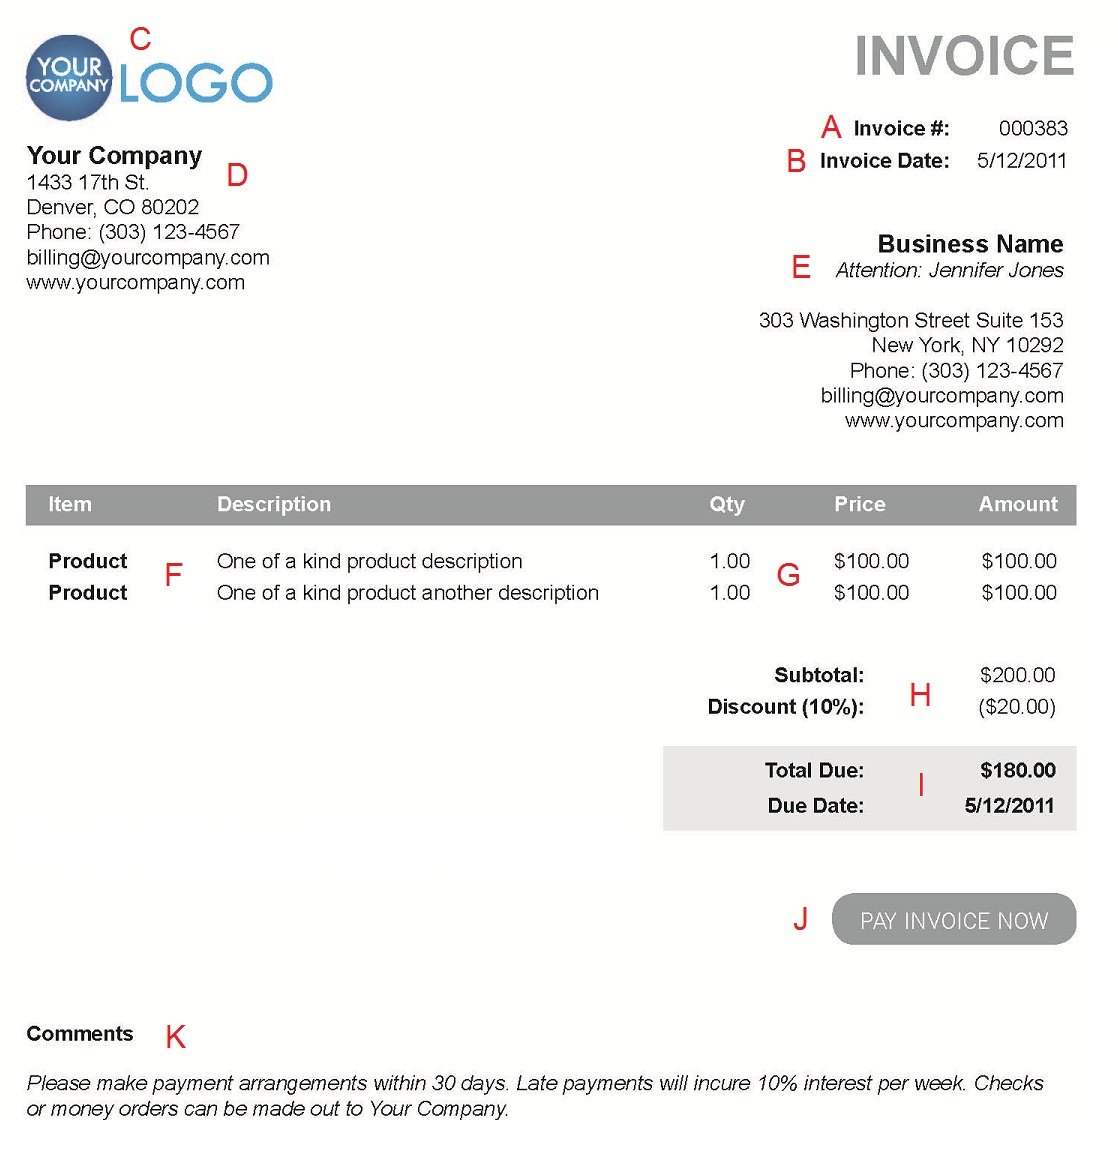 Atvingus  Fascinating The  Different Sections Of An Electronic Payment Invoice With Handsome A  With Easy On The Eye Word Document Invoice Also Invoice Xls In Addition Invoice Examples In Word And Honda Invoice Prices As Well As Free Microsoft Invoice Template Additionally What Should An Invoice Look Like From Paysimplecom With Atvingus  Handsome The  Different Sections Of An Electronic Payment Invoice With Easy On The Eye A  And Fascinating Word Document Invoice Also Invoice Xls In Addition Invoice Examples In Word From Paysimplecom